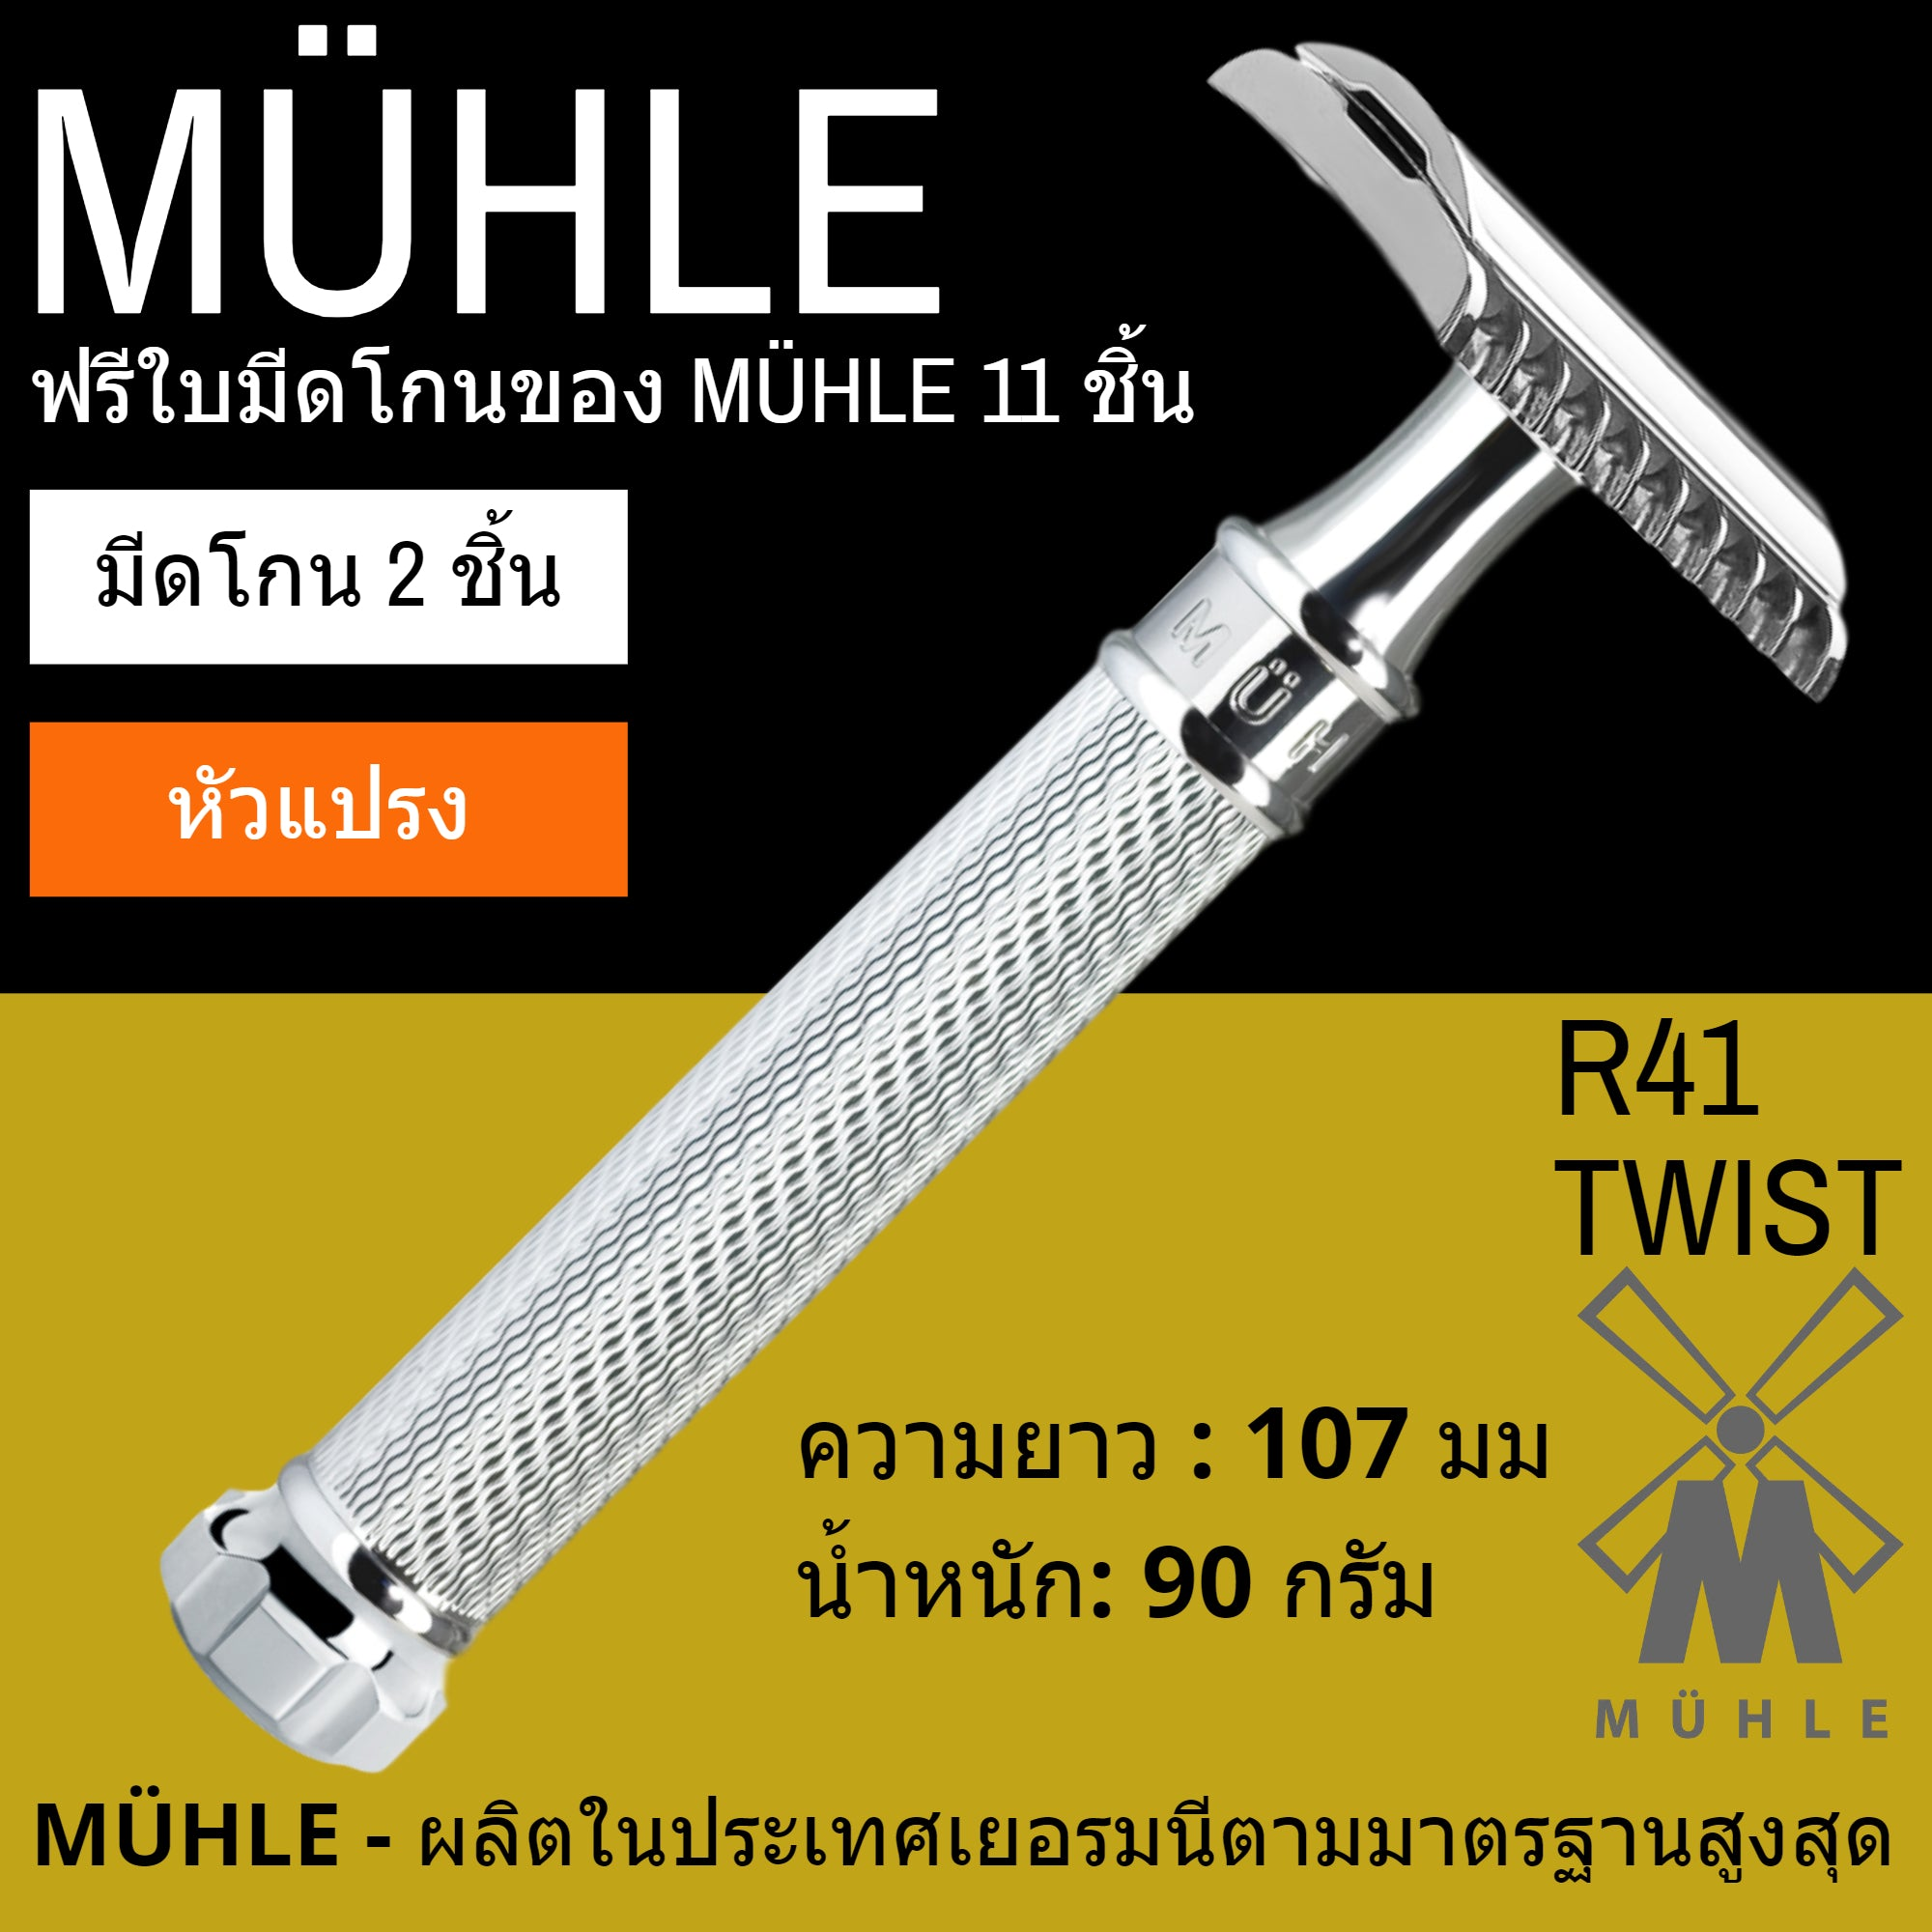 Muhle r41 Twist Safety Razor Man Of Siam Wet Shave